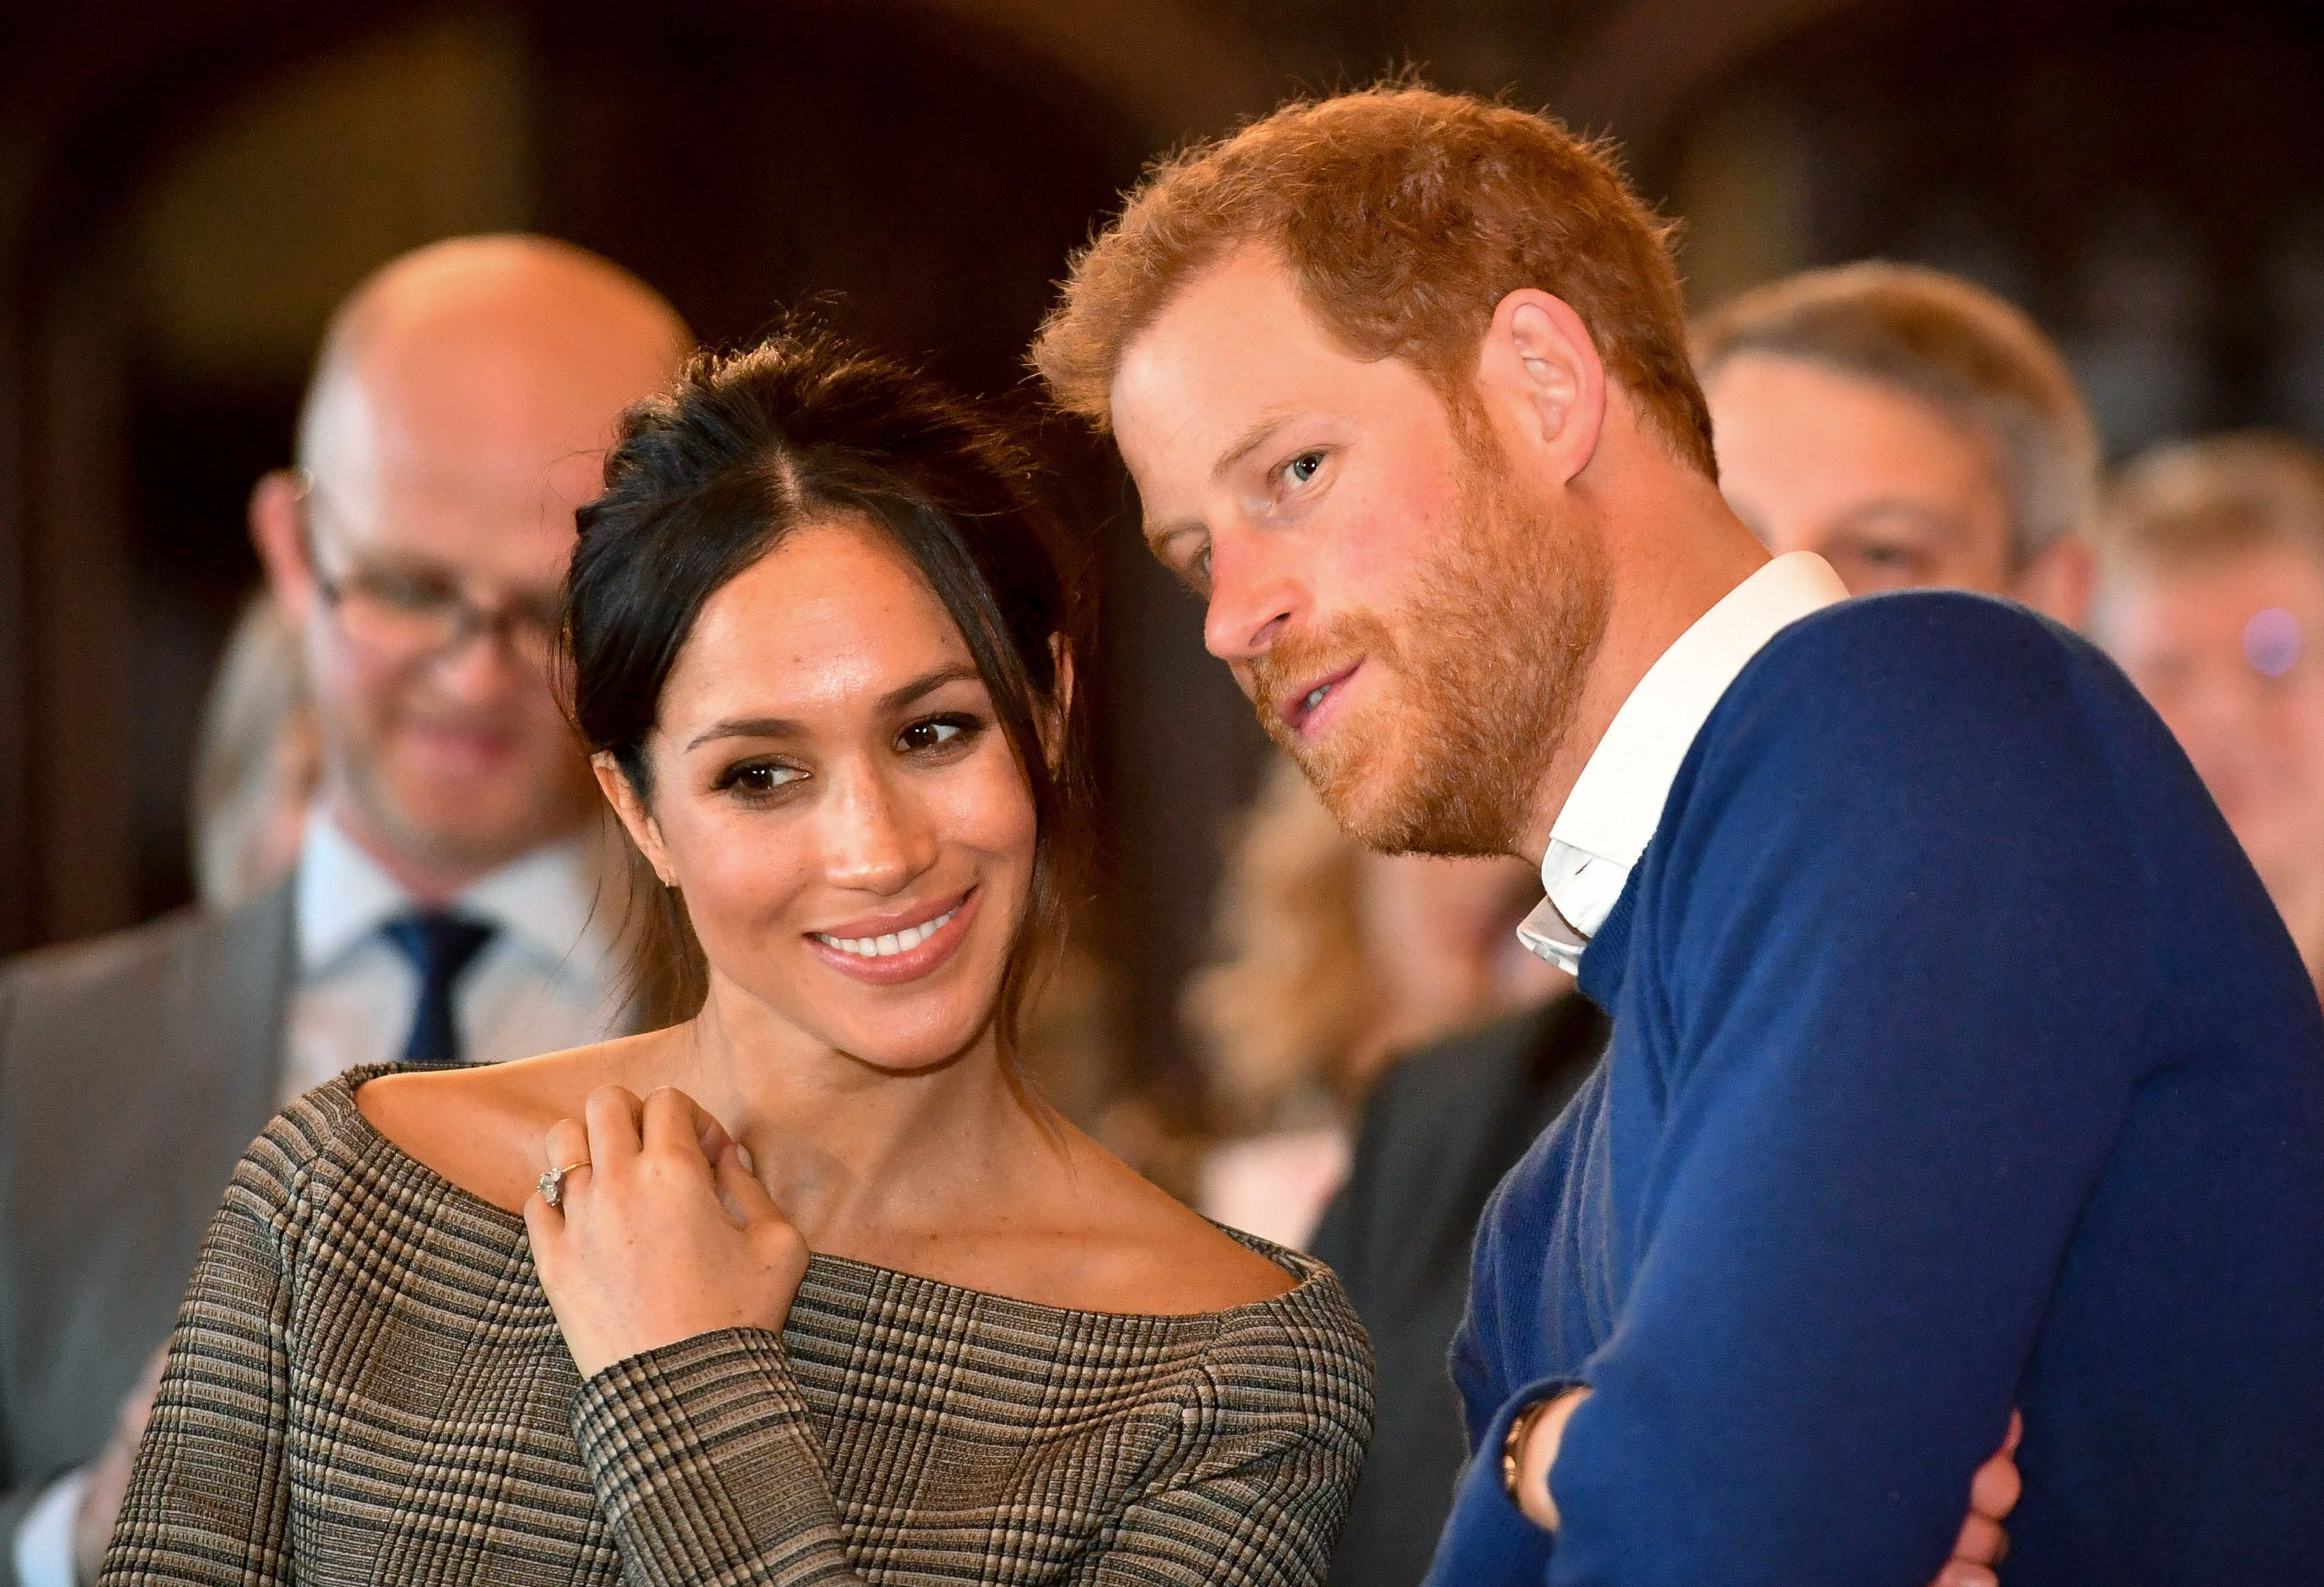 Prince harry dating 2019